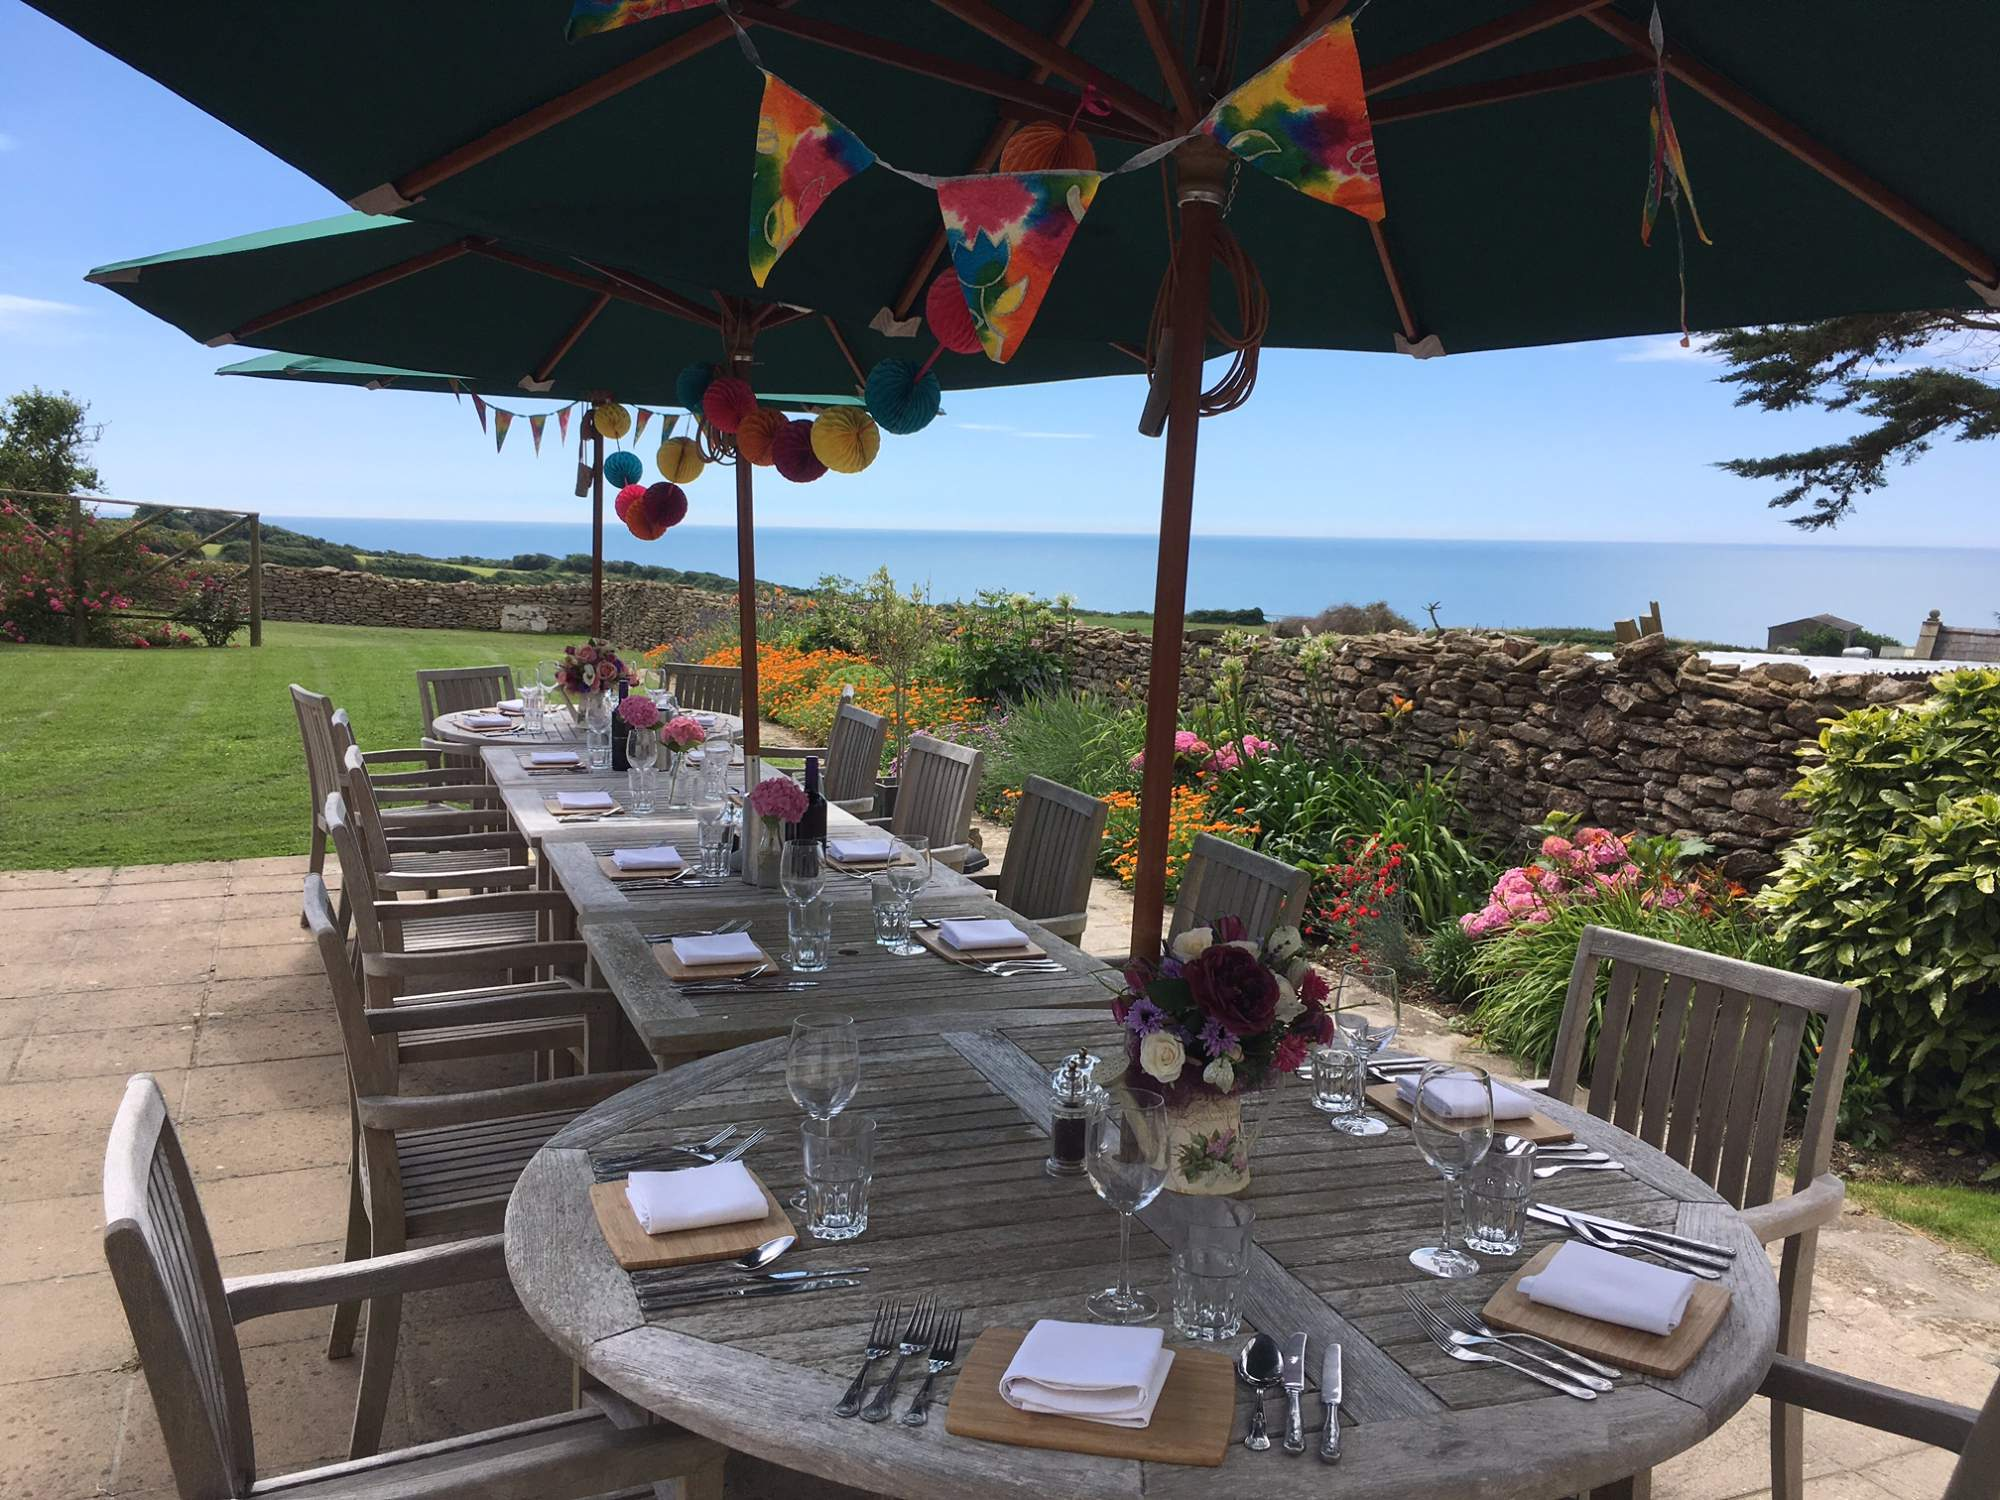 Alfresco dining looking over Lyme Bay